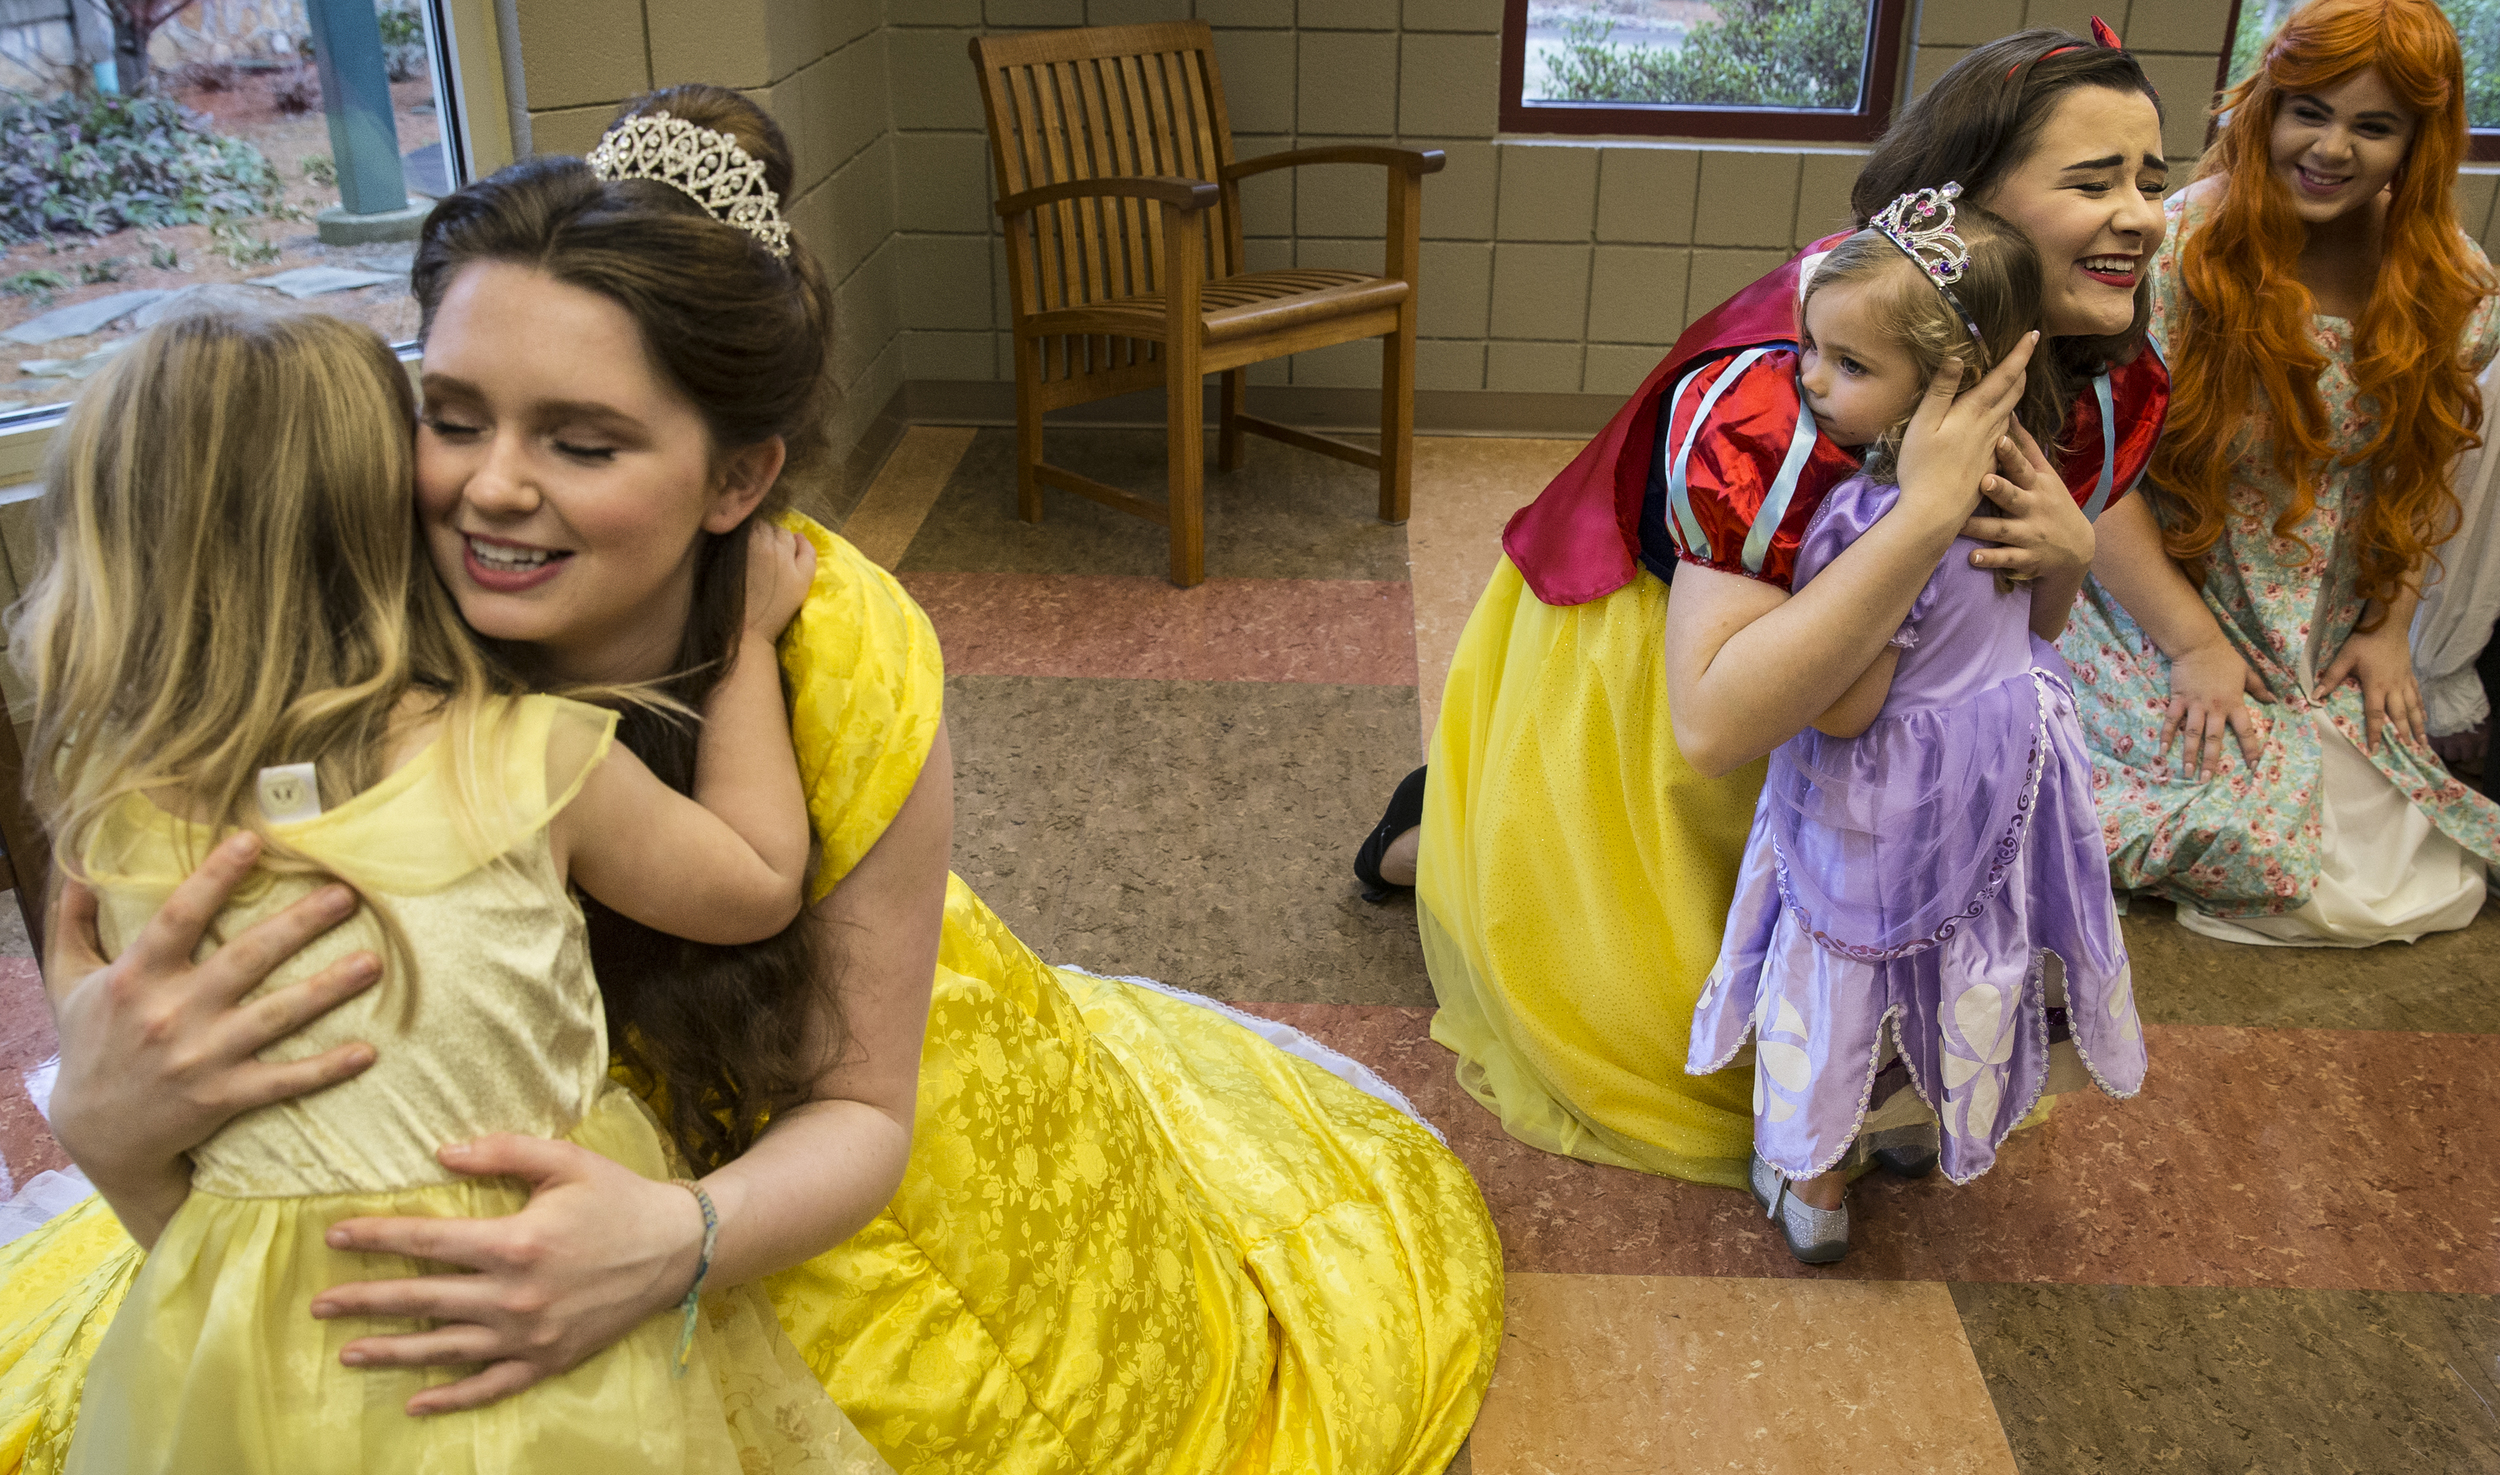 Disney princesses took over Christ Episcopal Church on Sunday, February 21, 2016, for Bowling Green High School's fourth annual Princess Tea. This event was to help raise funds for the school's choral activities and to bring joy to little girls hearts. Stephanie Berec dressed as Snow White, right, said goodbye to Landry Keltner, 3, as the event was coming to an end.